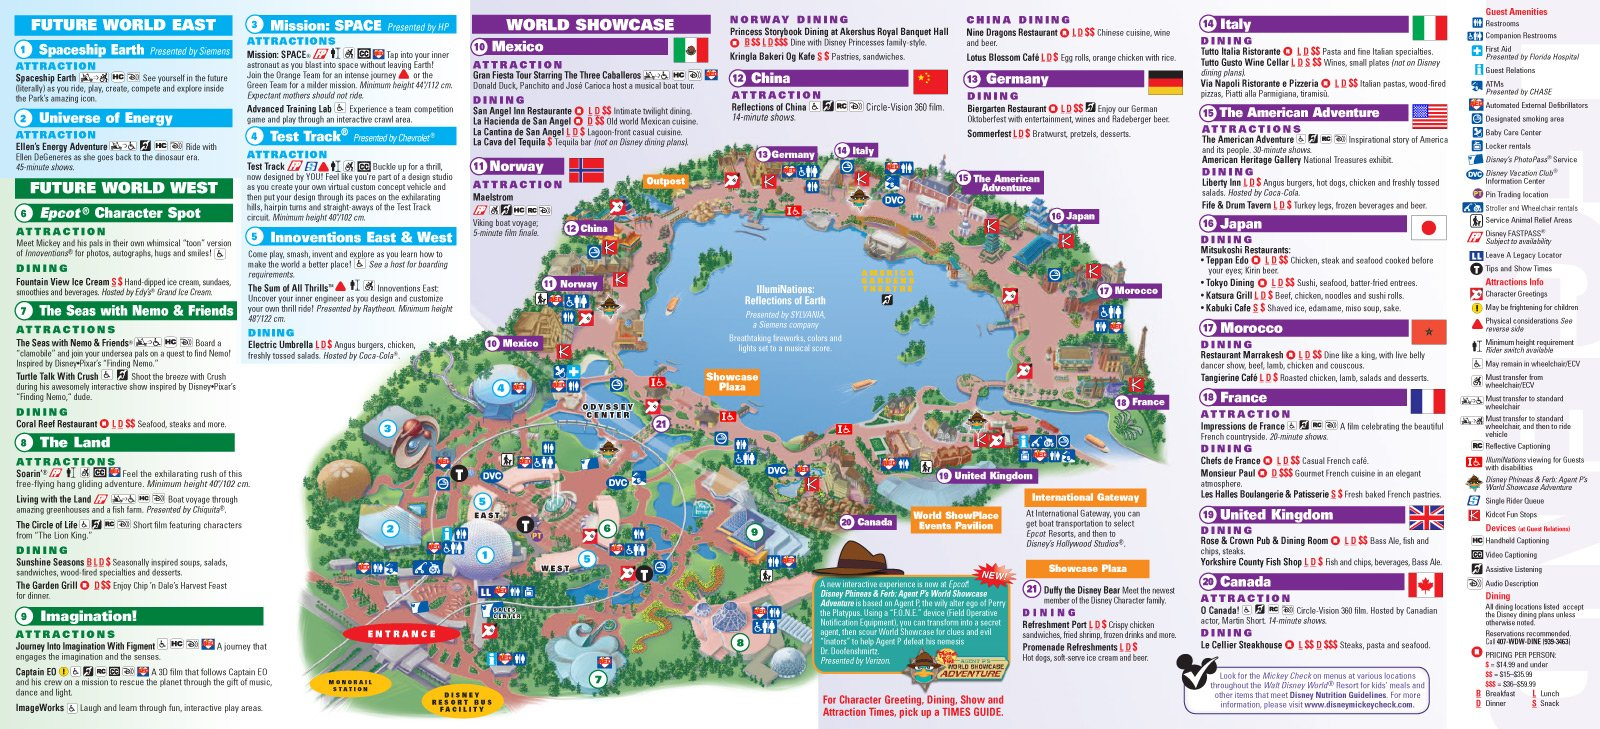 This is a graphic of Slobbery Printable Disney Maps